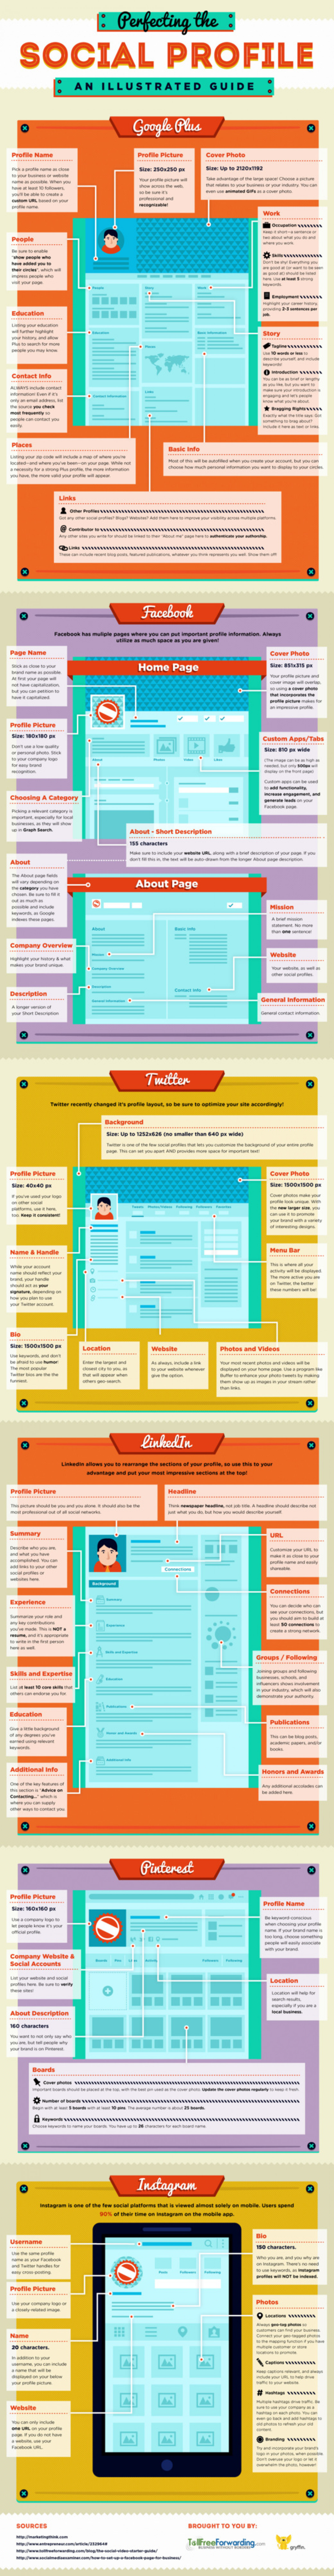 Perfecting the Social Profile: An Illustrated Guide Infographic